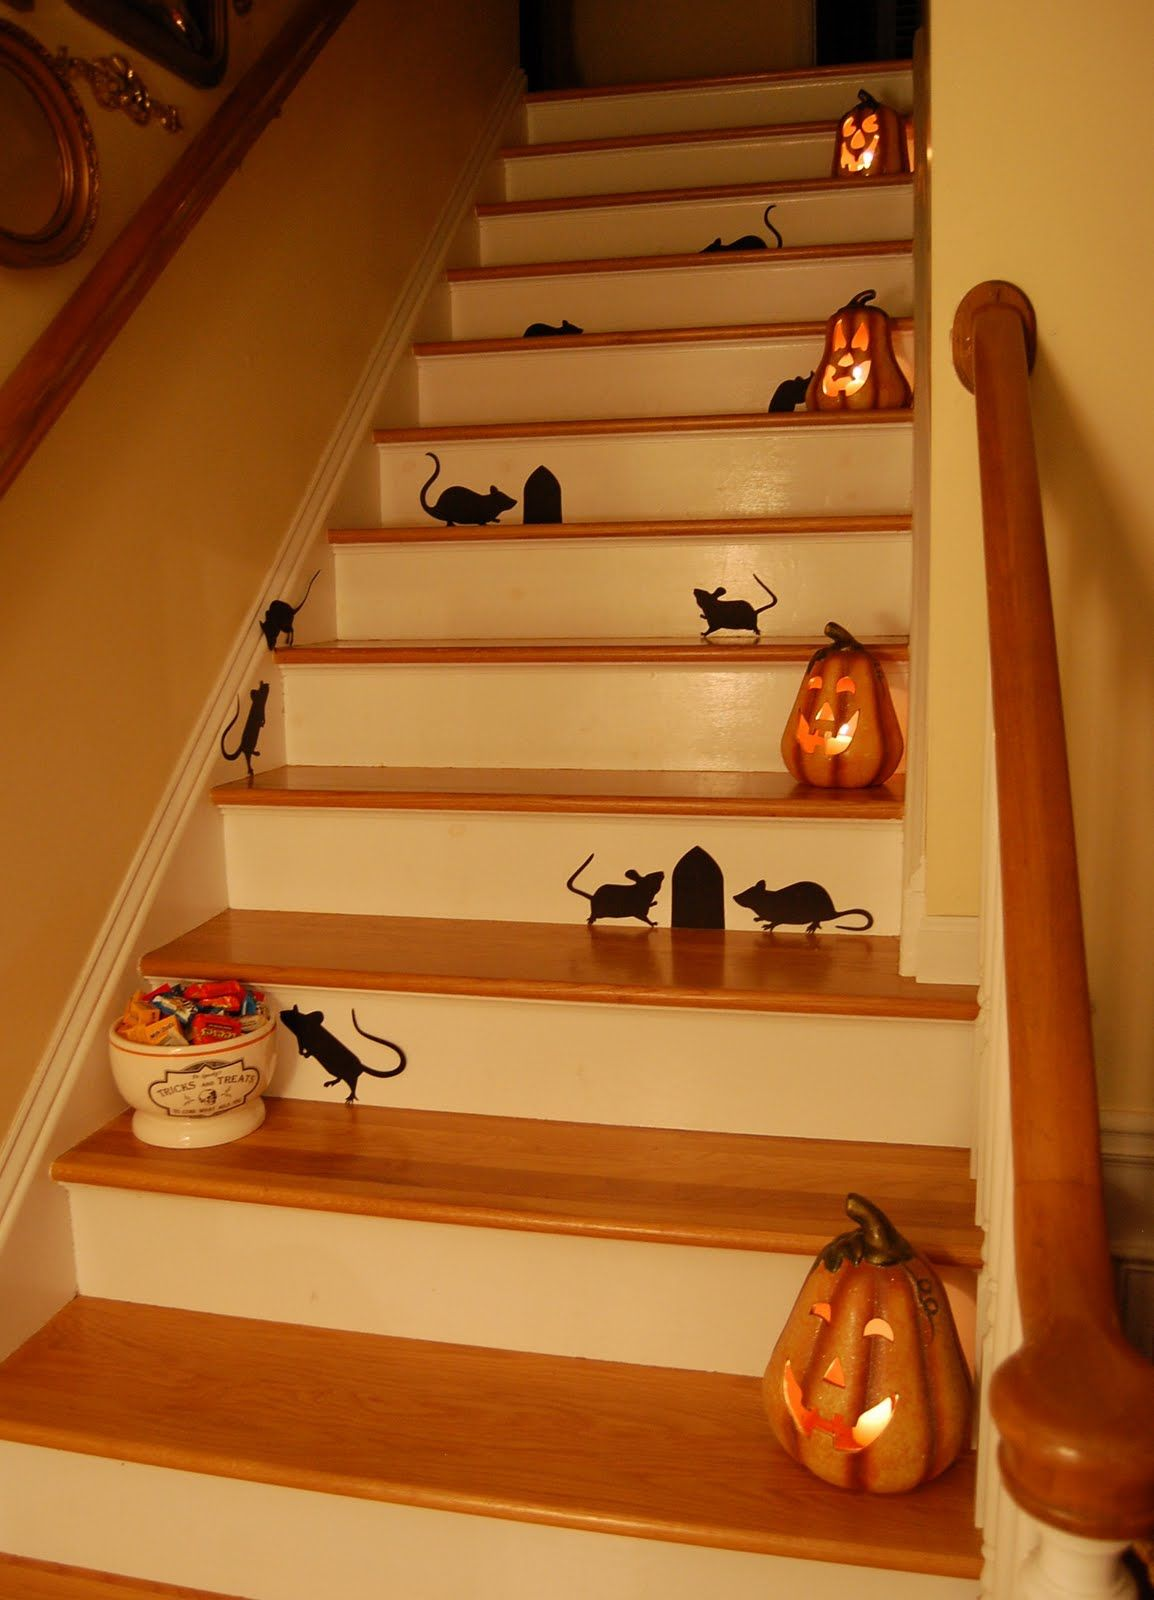 Decorating for Halloween Martha stewart, Mice and Decorating - Decorating For Halloween